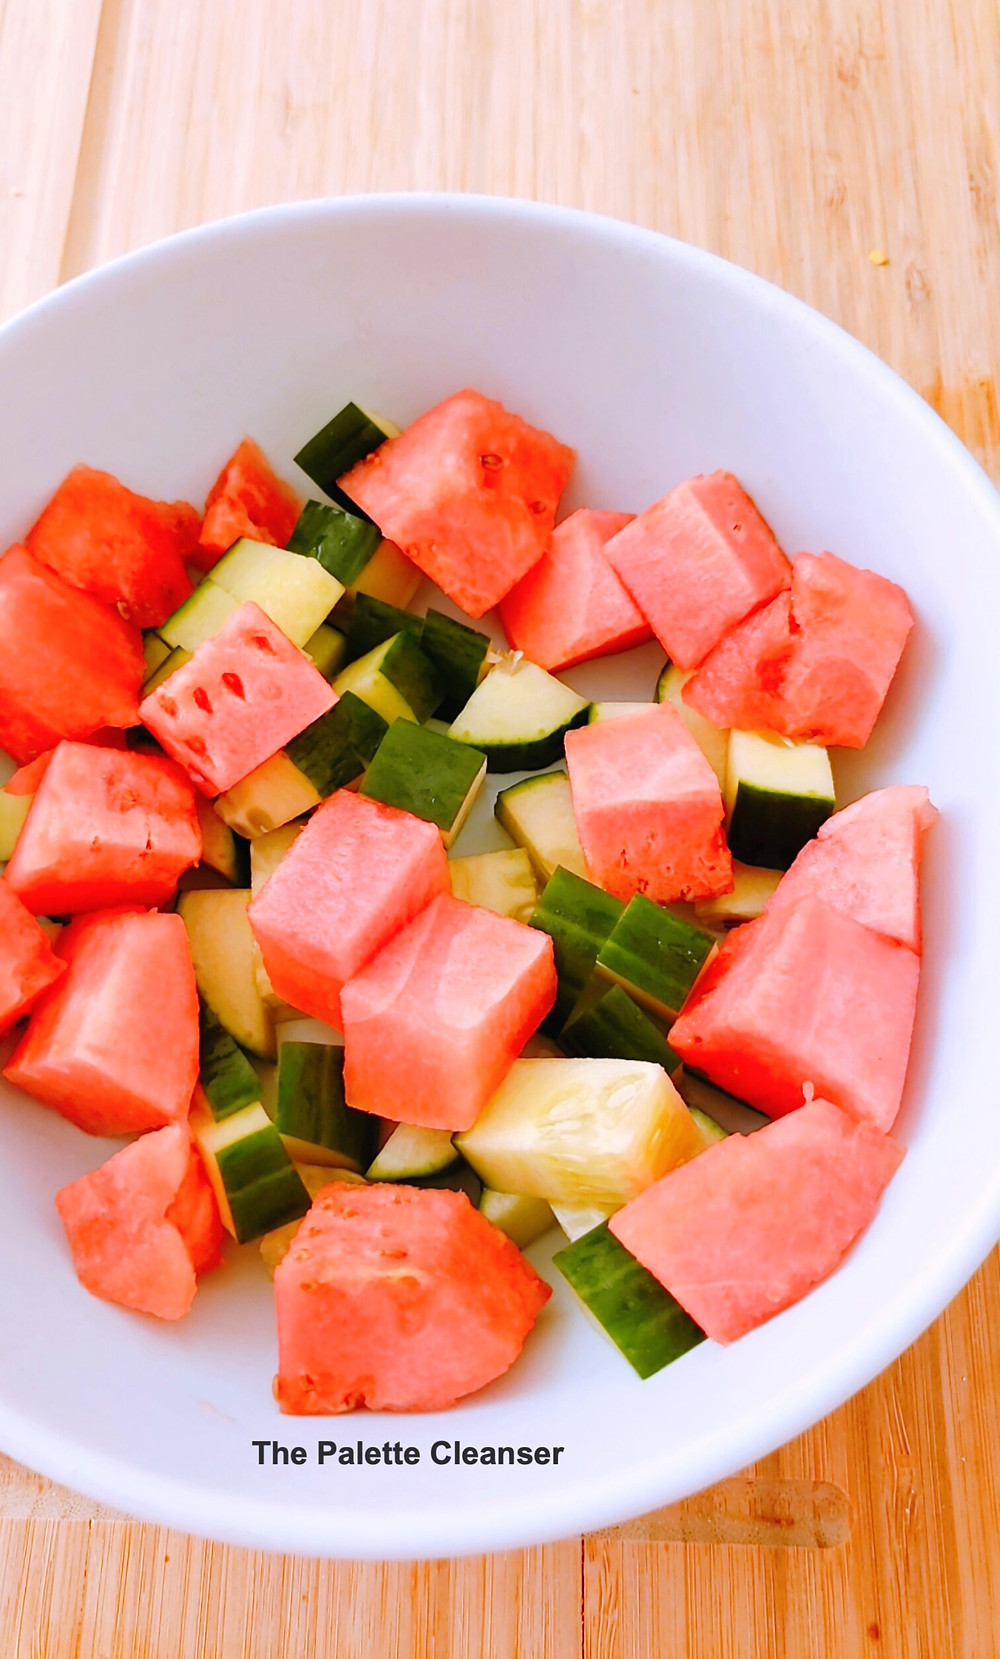 diced cucumbers and watermelon